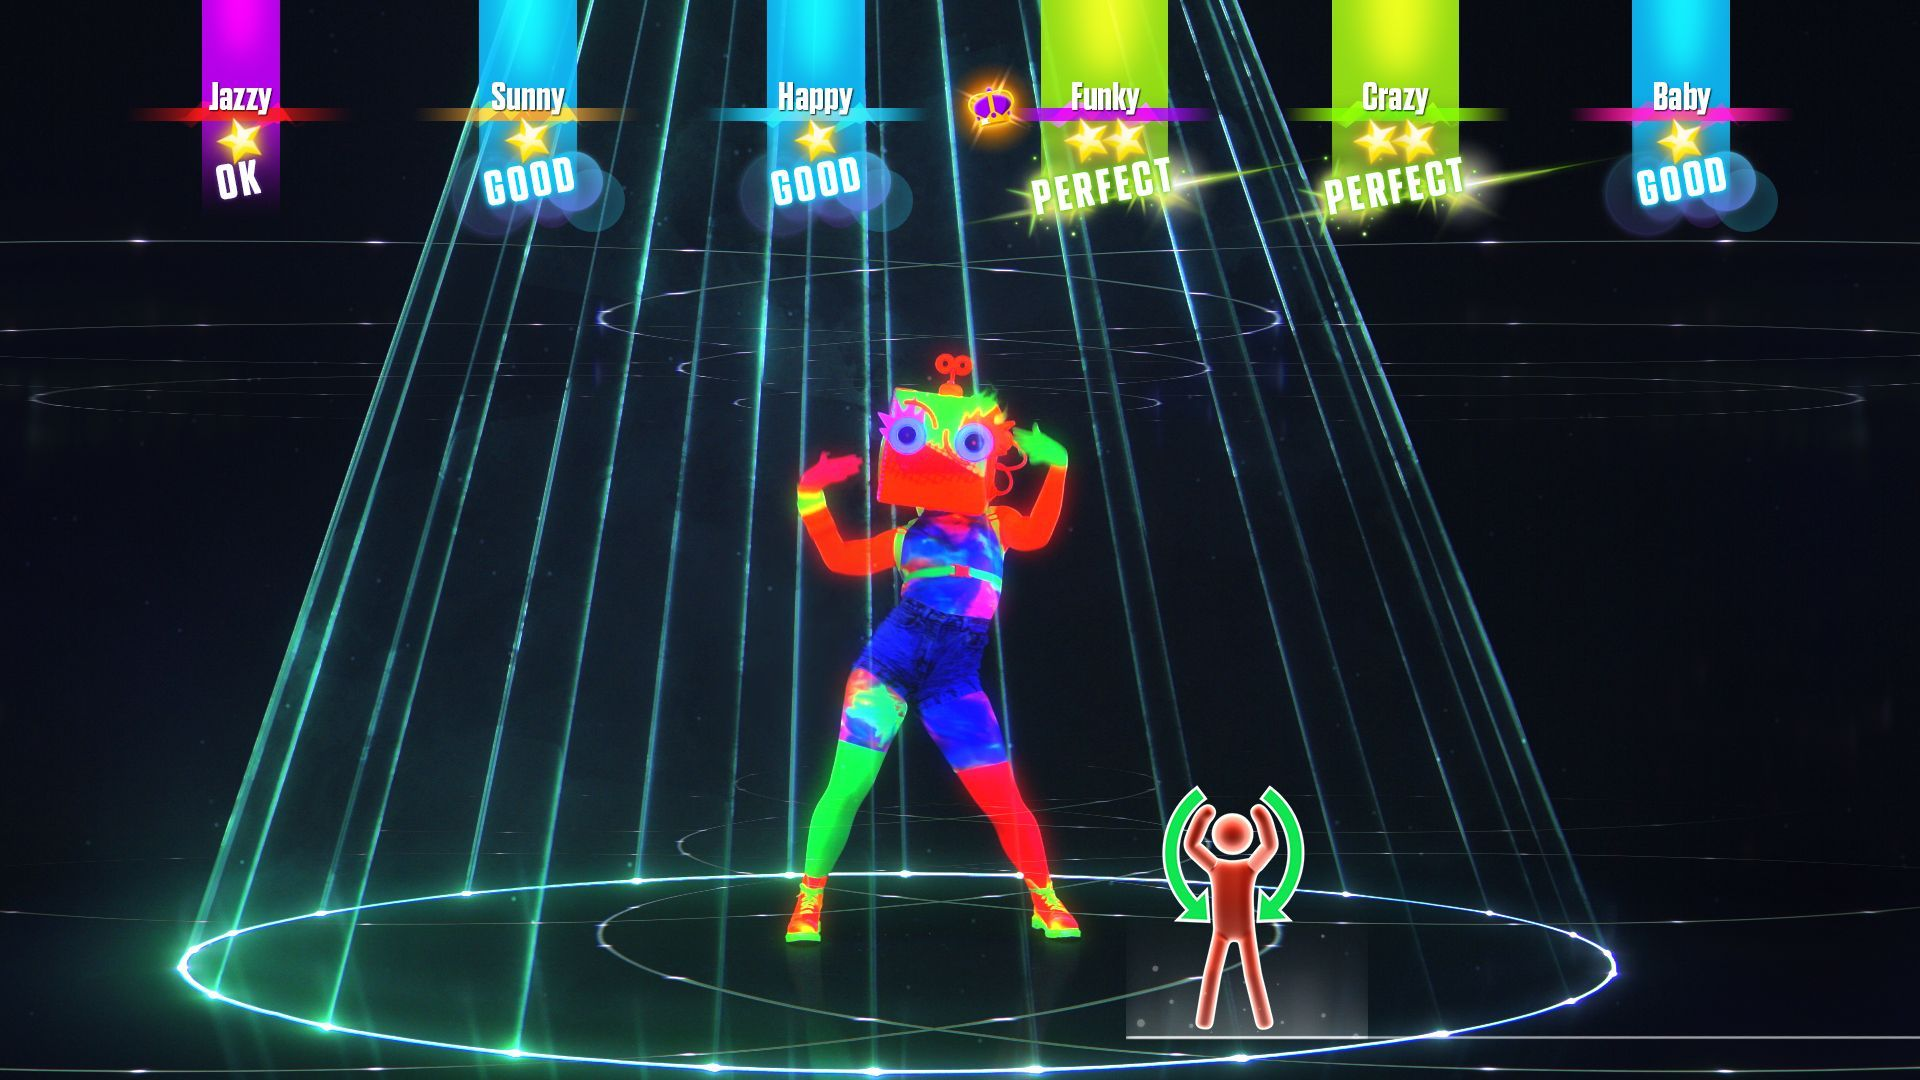 Just Dance 2017 (Xbox One) - 9